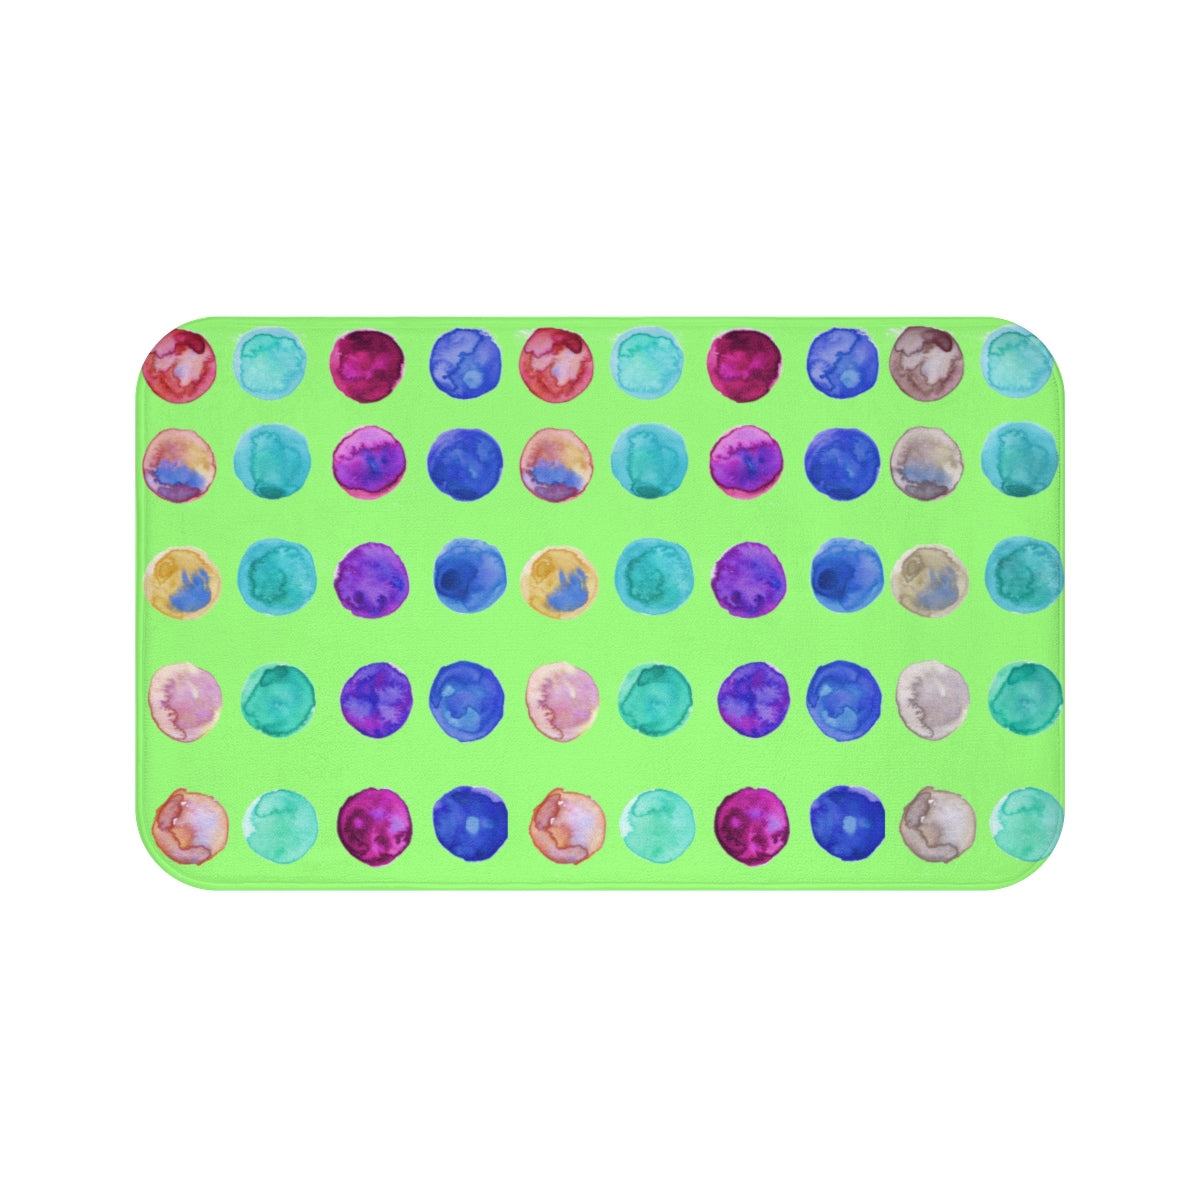 "Polka Dot Colorful Dots Cute Anti-Slip Microfiber 34""x21"", 24""x17"" Bath Mat-Bath Mat-Large 34x21-Heidi Kimura Art LLC"